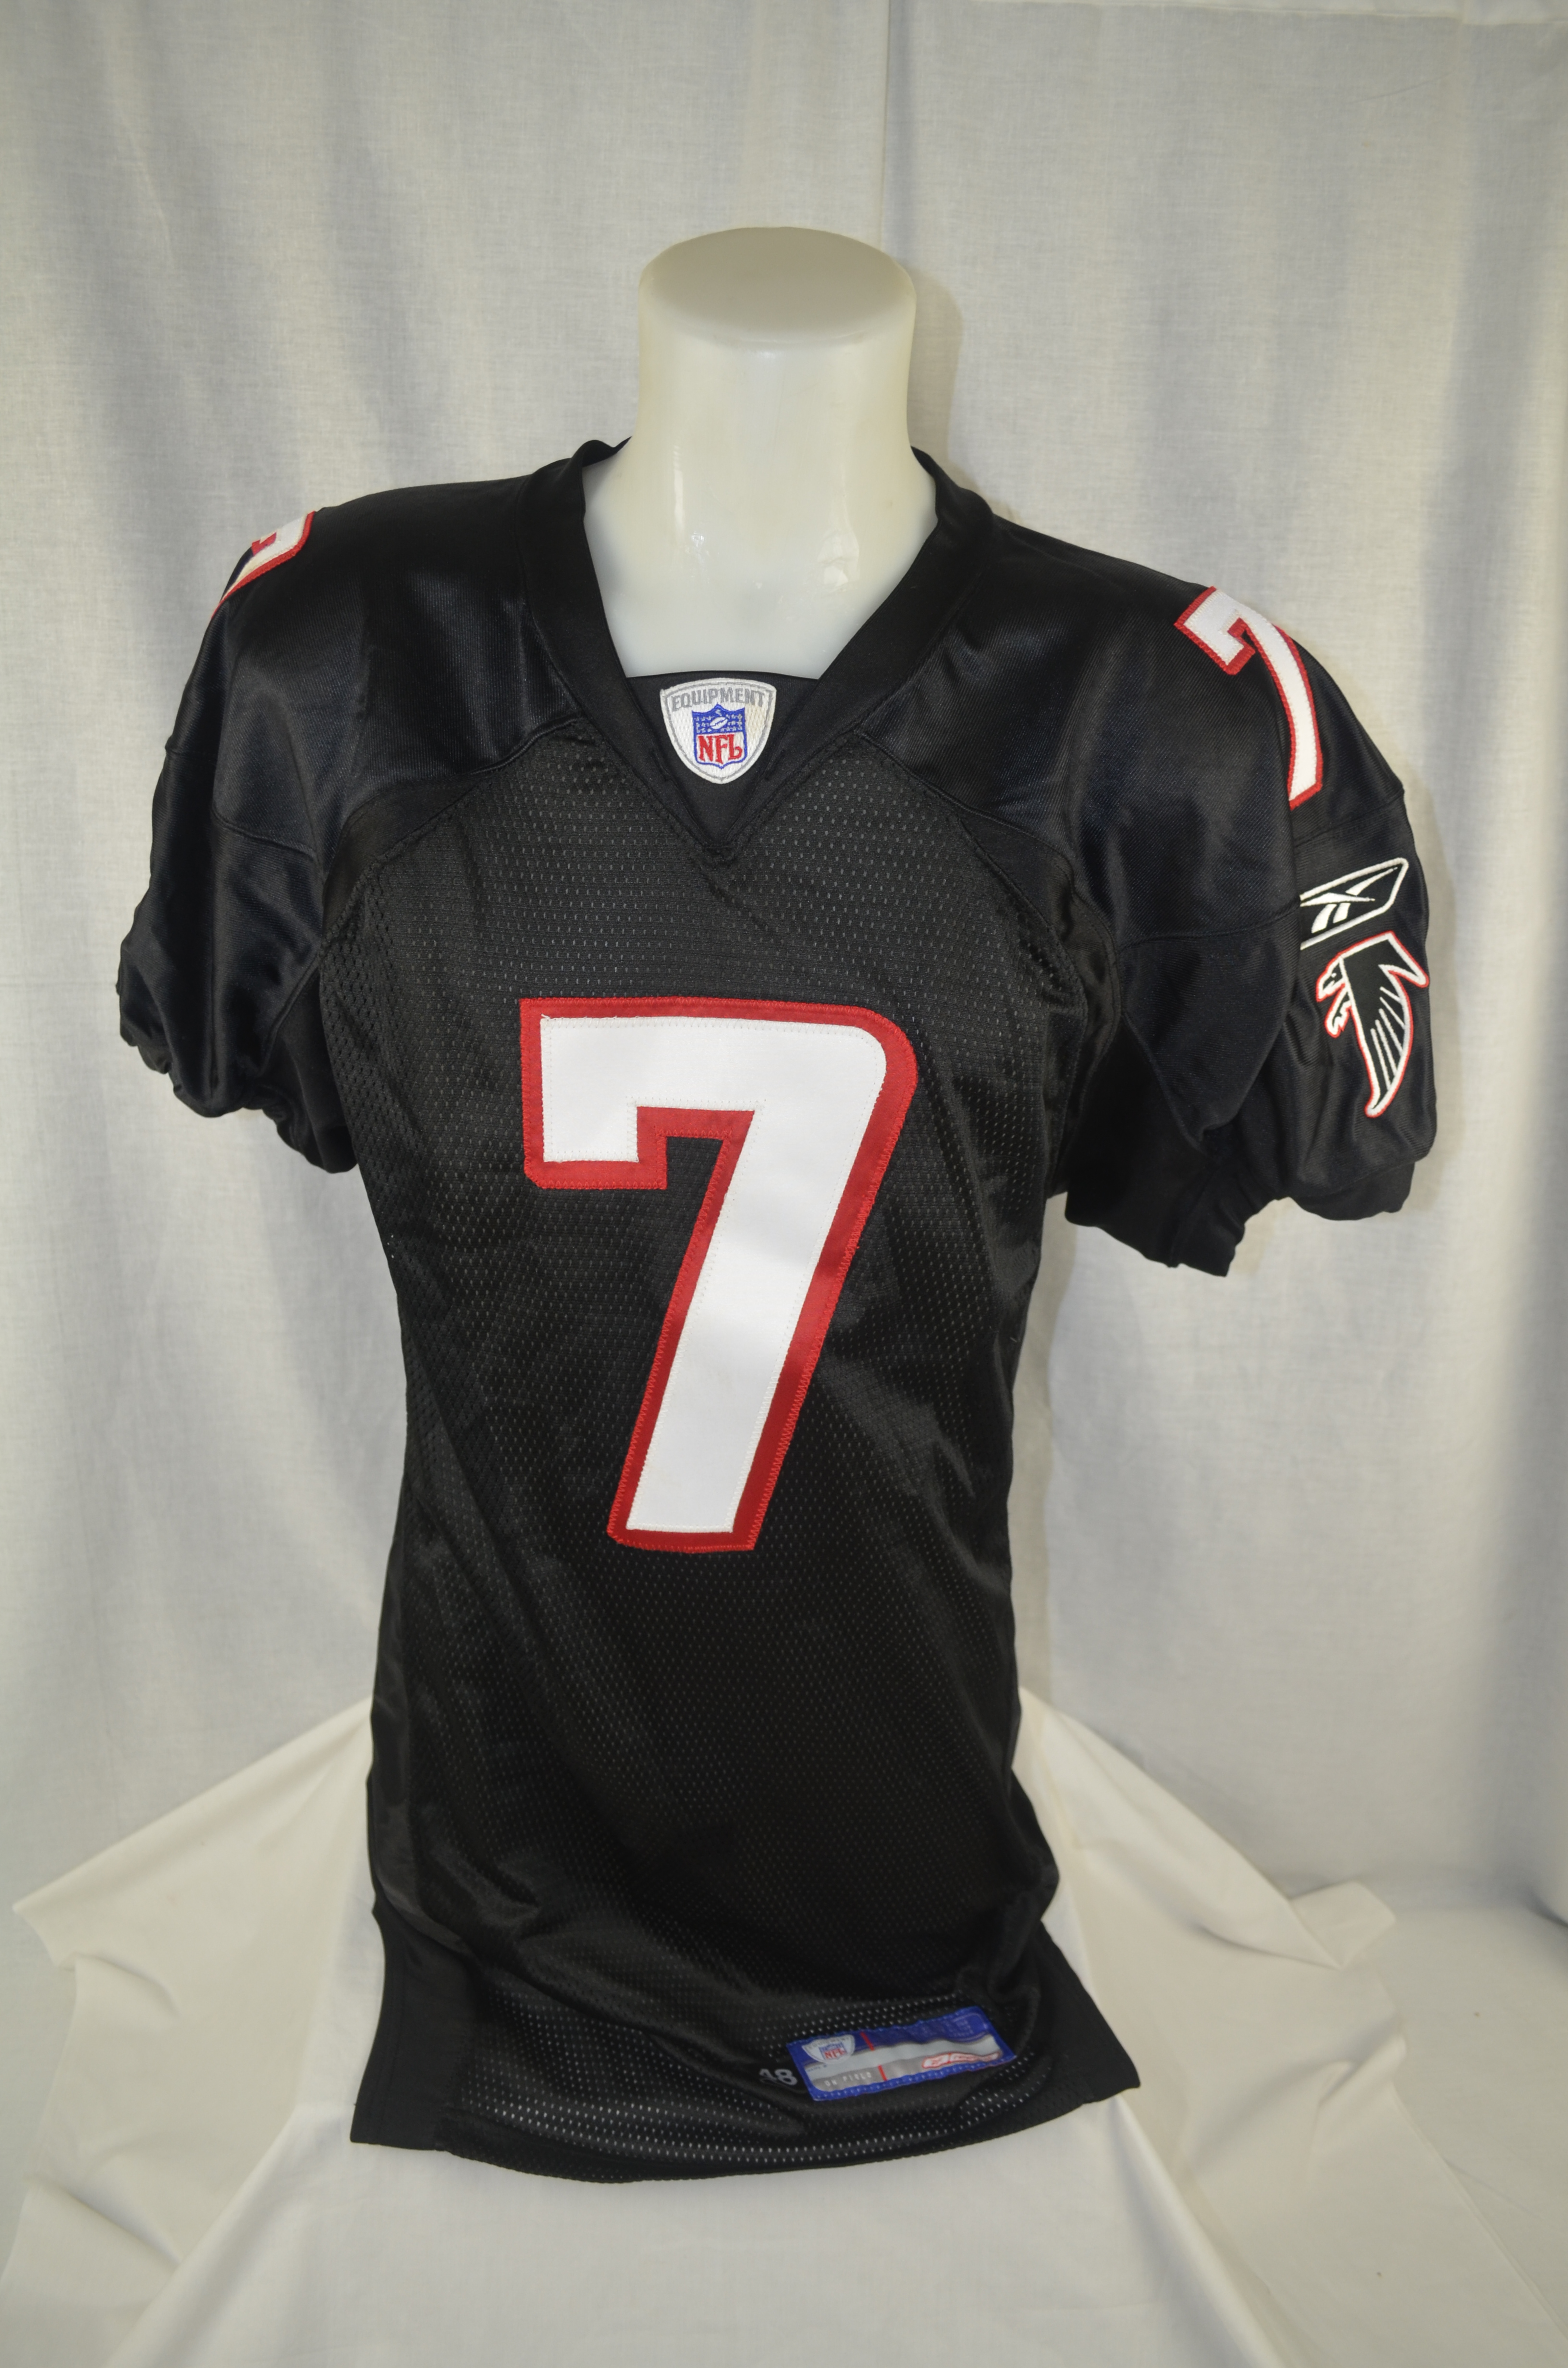 09580283b Michael Vick 2002 Atlanta Falcons Professional Model Jersey wLight Use .